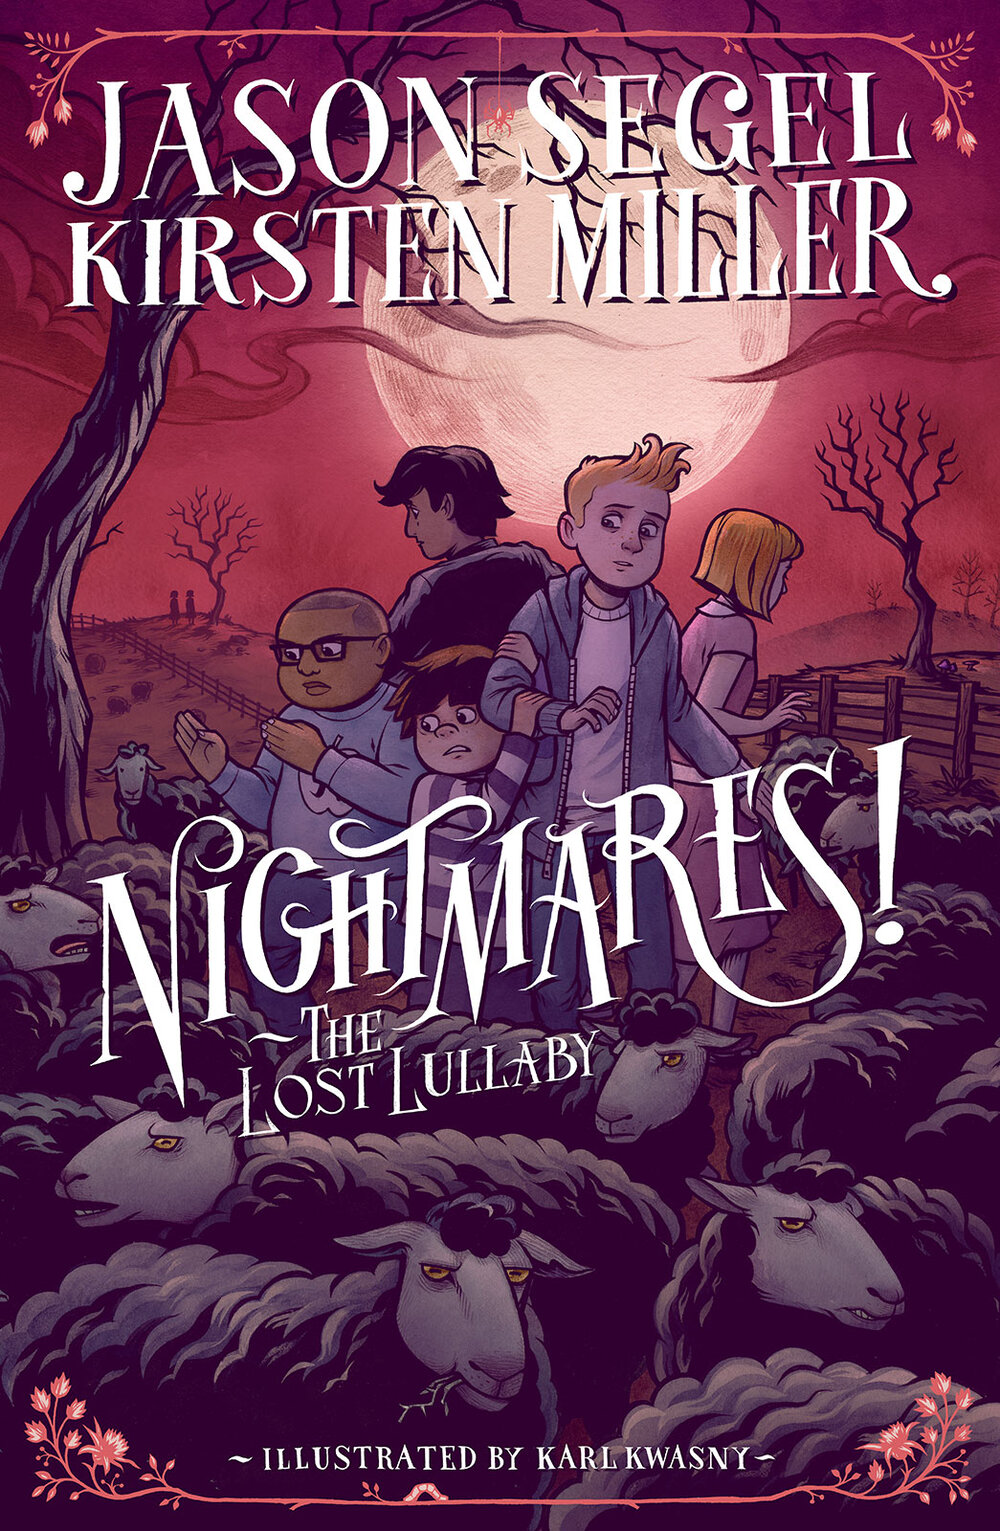 Cover for  Nightmares! III  by Jason Segel & Kirsten Miller